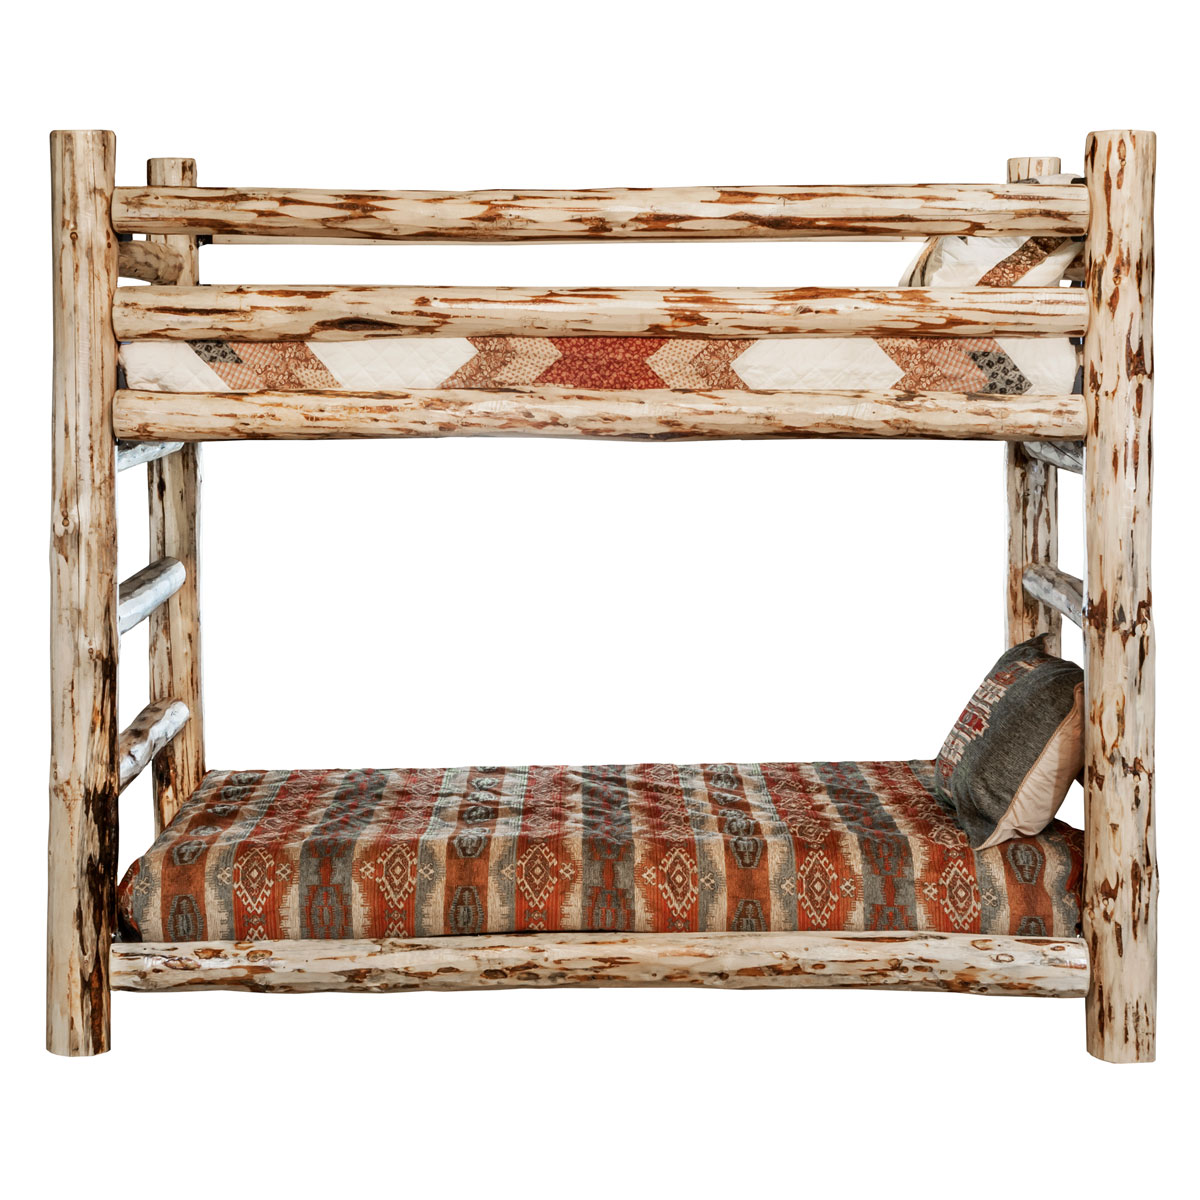 Log Beds Lacquer Finish Hand Peeled Rustic Twin Size Log Bunk Bed